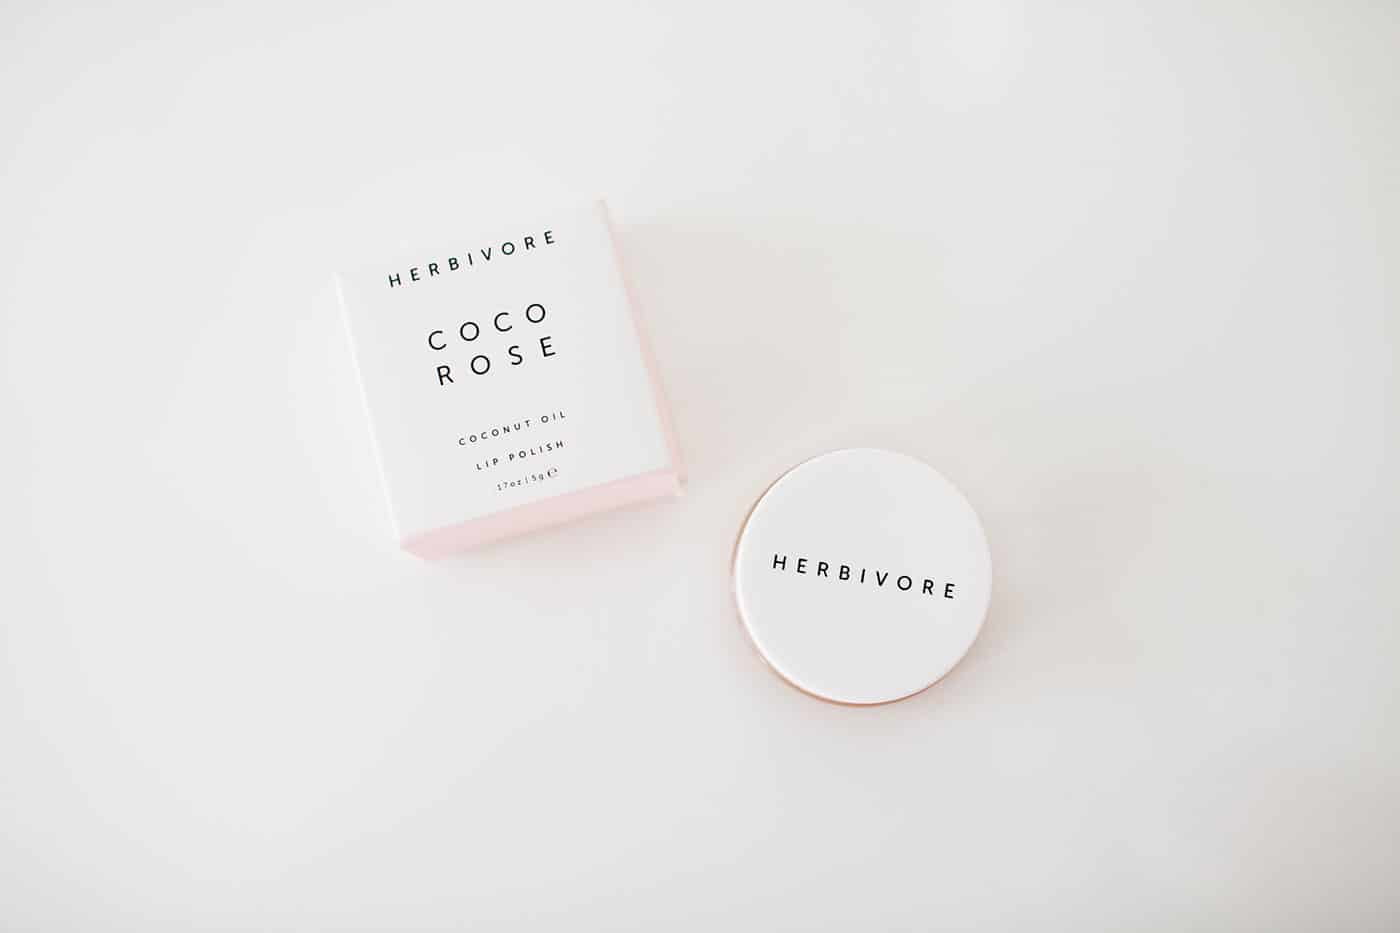 Tiffani Thiessen's Holiday Gift Guide 2016: Stocking Stuffer (female): Herbivore Botanicals Coco Rose lip polish